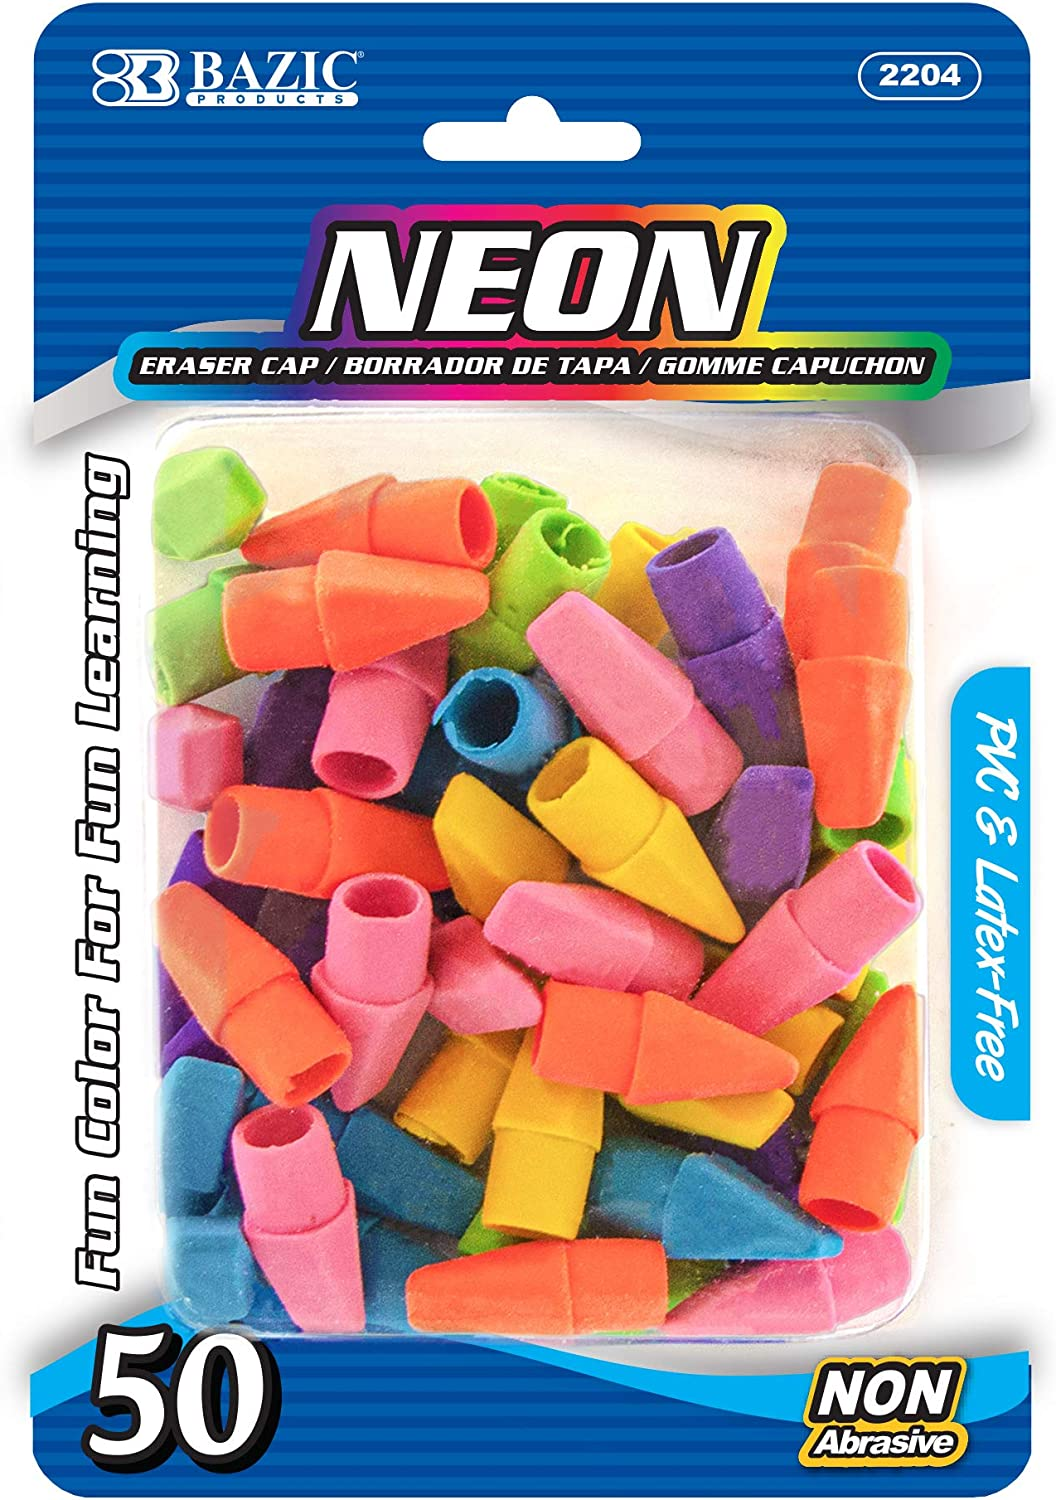 BAZIC Eraser New popularity safety Top Latex Free Pencil Pack Neon 50 Tops Erasers